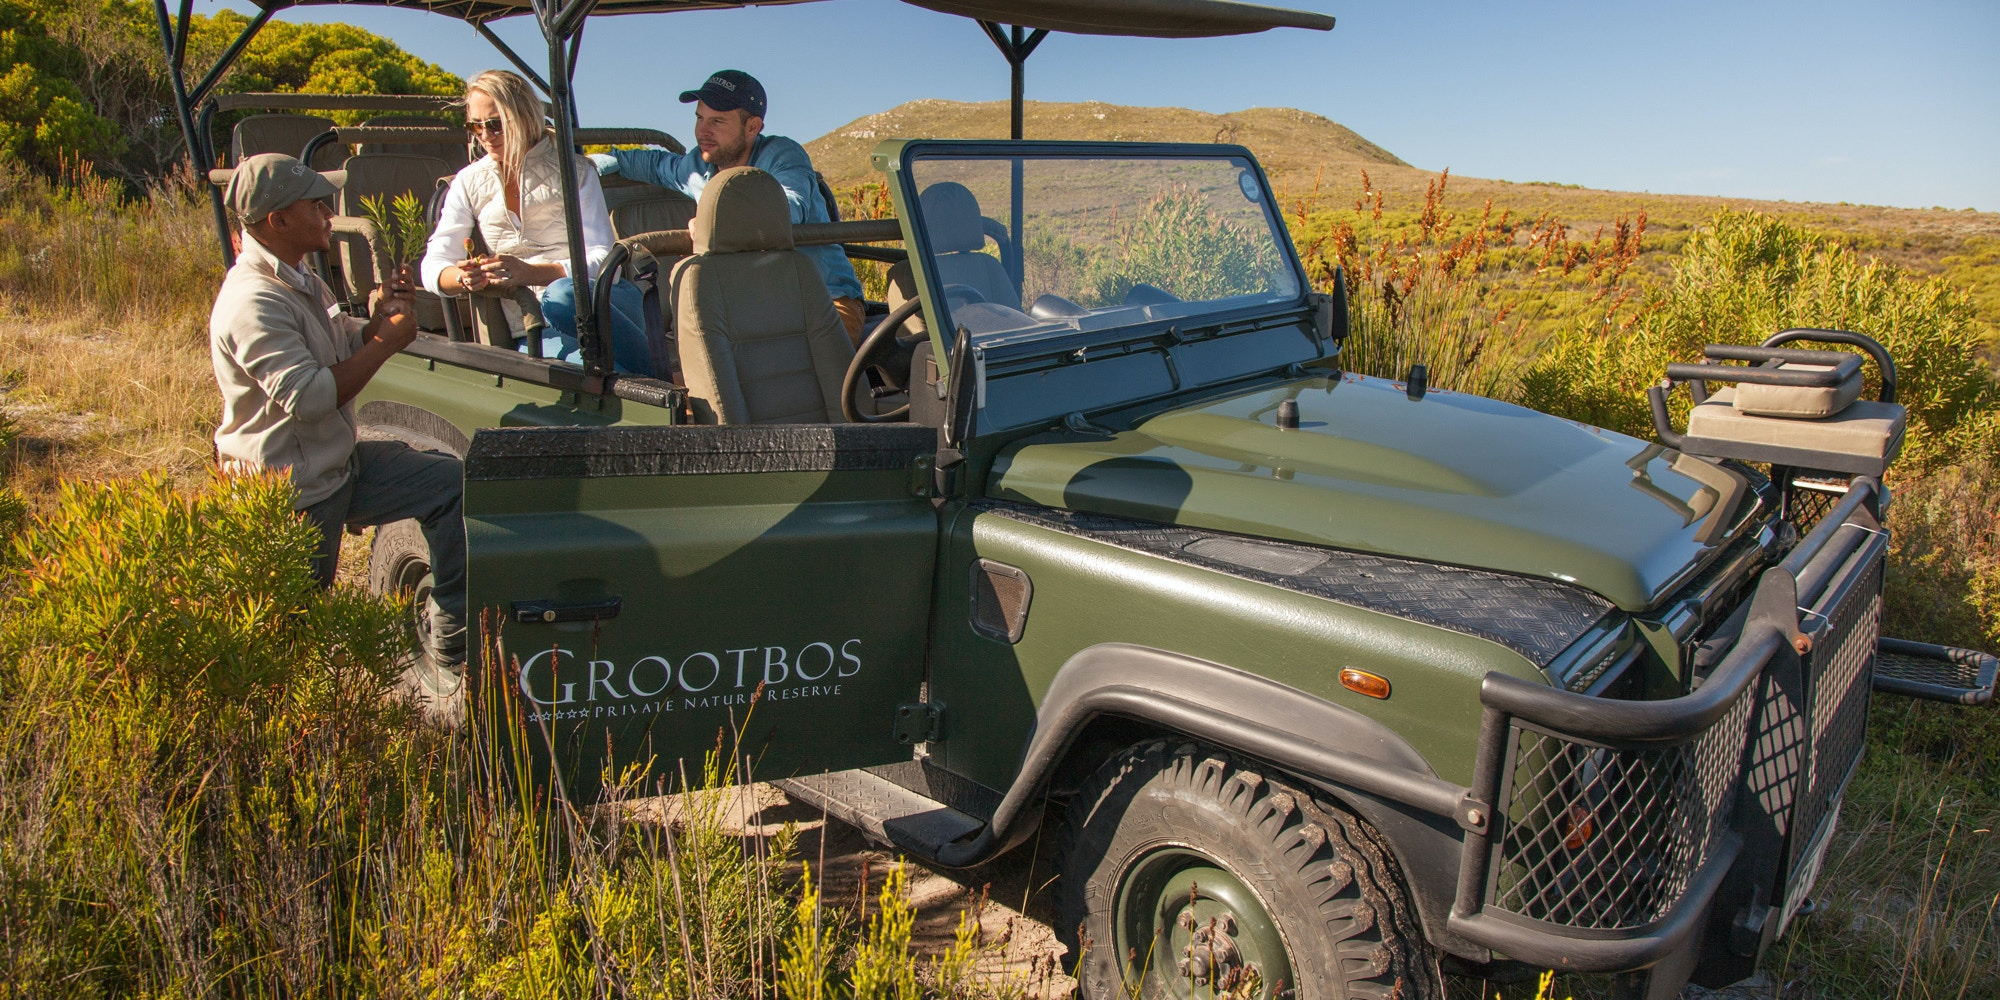 Copy of web grootbos experience flower safari 05